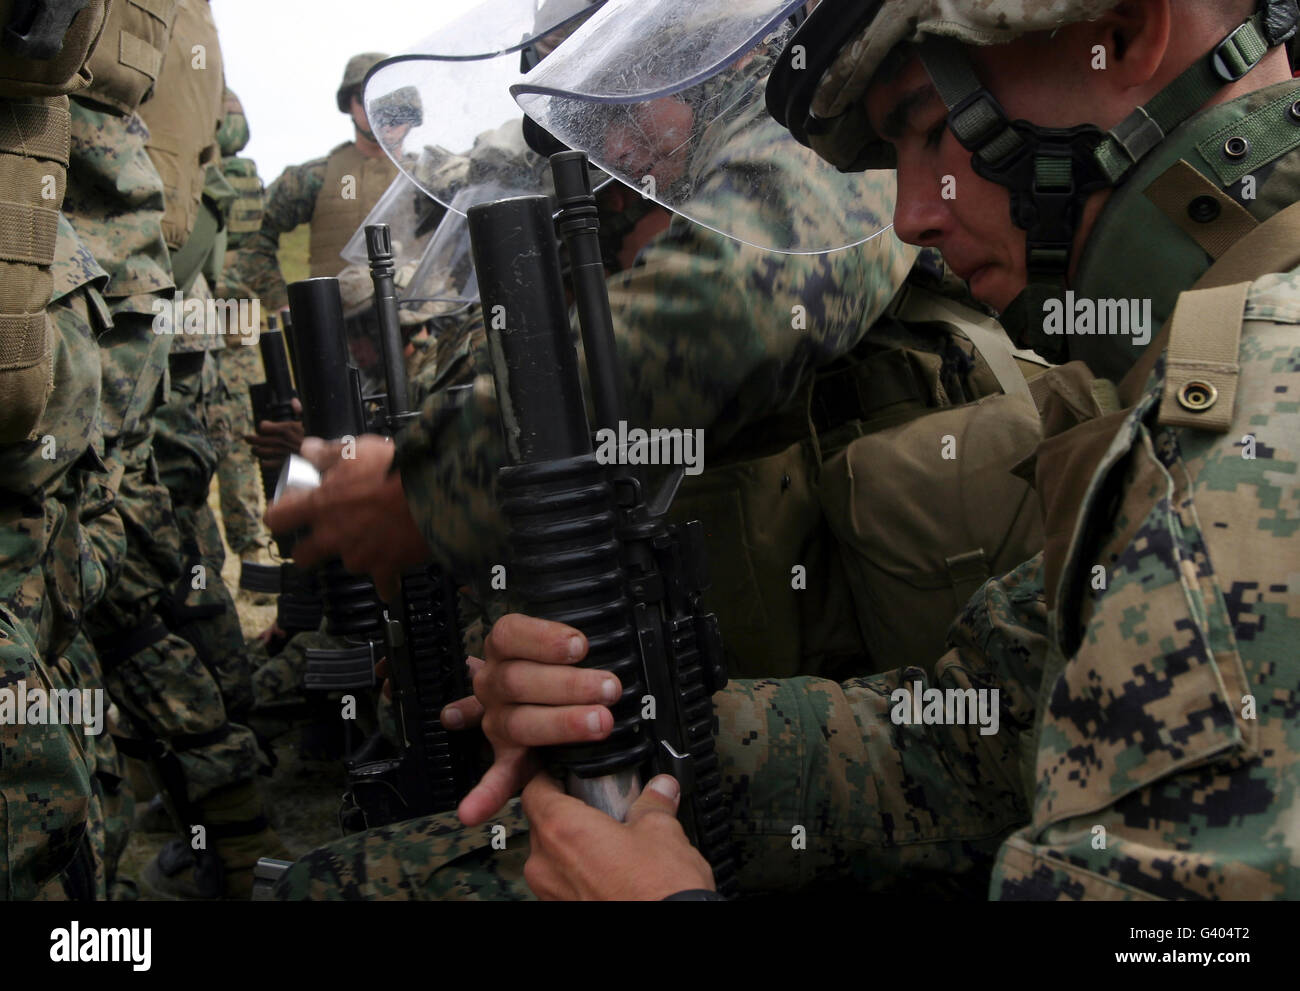 A rifleman loads a foam baton round into his M203 grenade launcher. - Stock Image